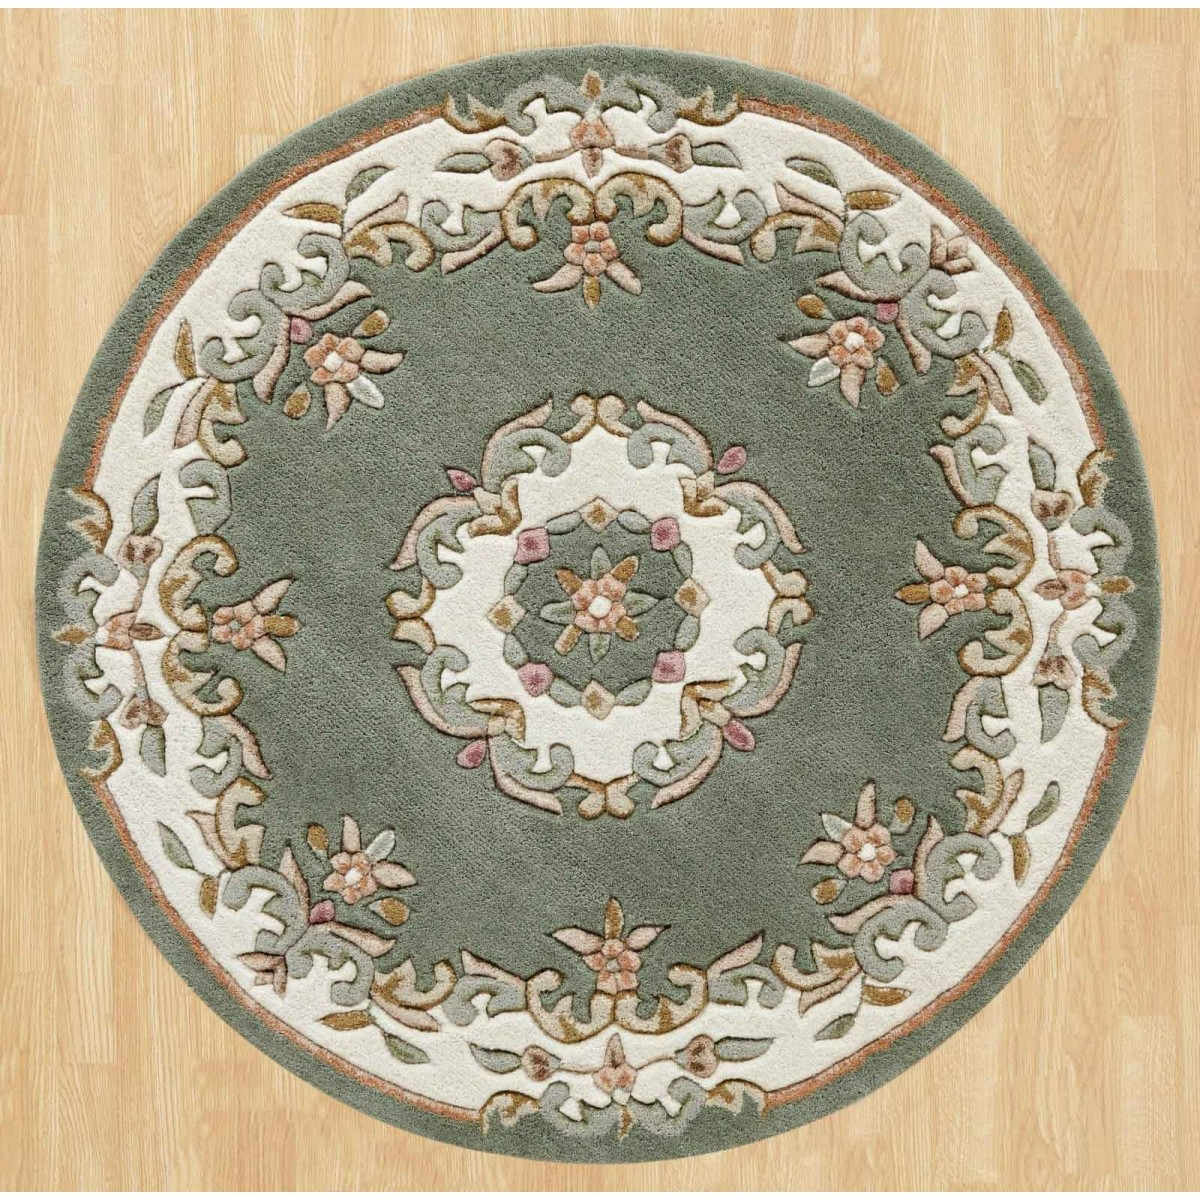 Round Rugs Circular Rugs Online For Sale Therugshopuk Throughout Circular Green Rugs (Image 12 of 15)